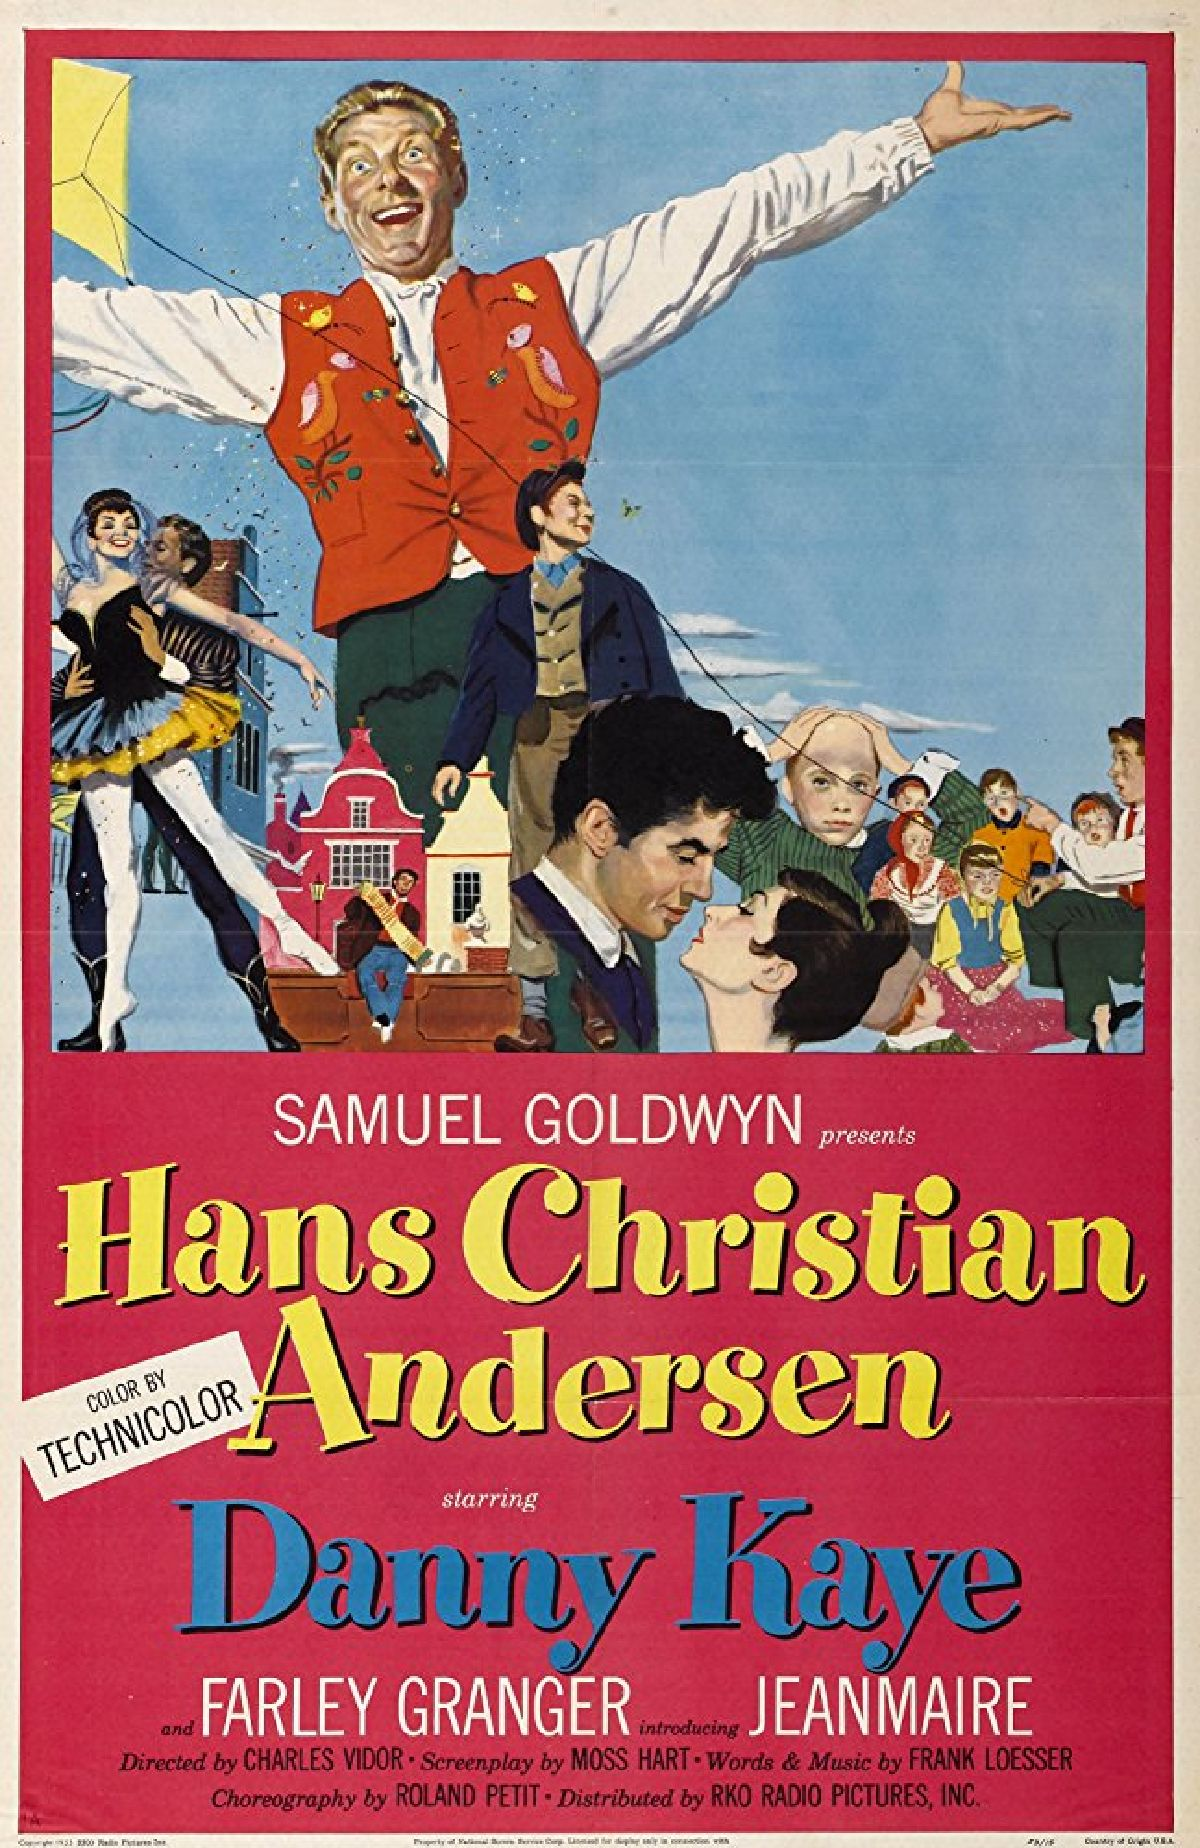 'Hans Christian Andersen' movie poster